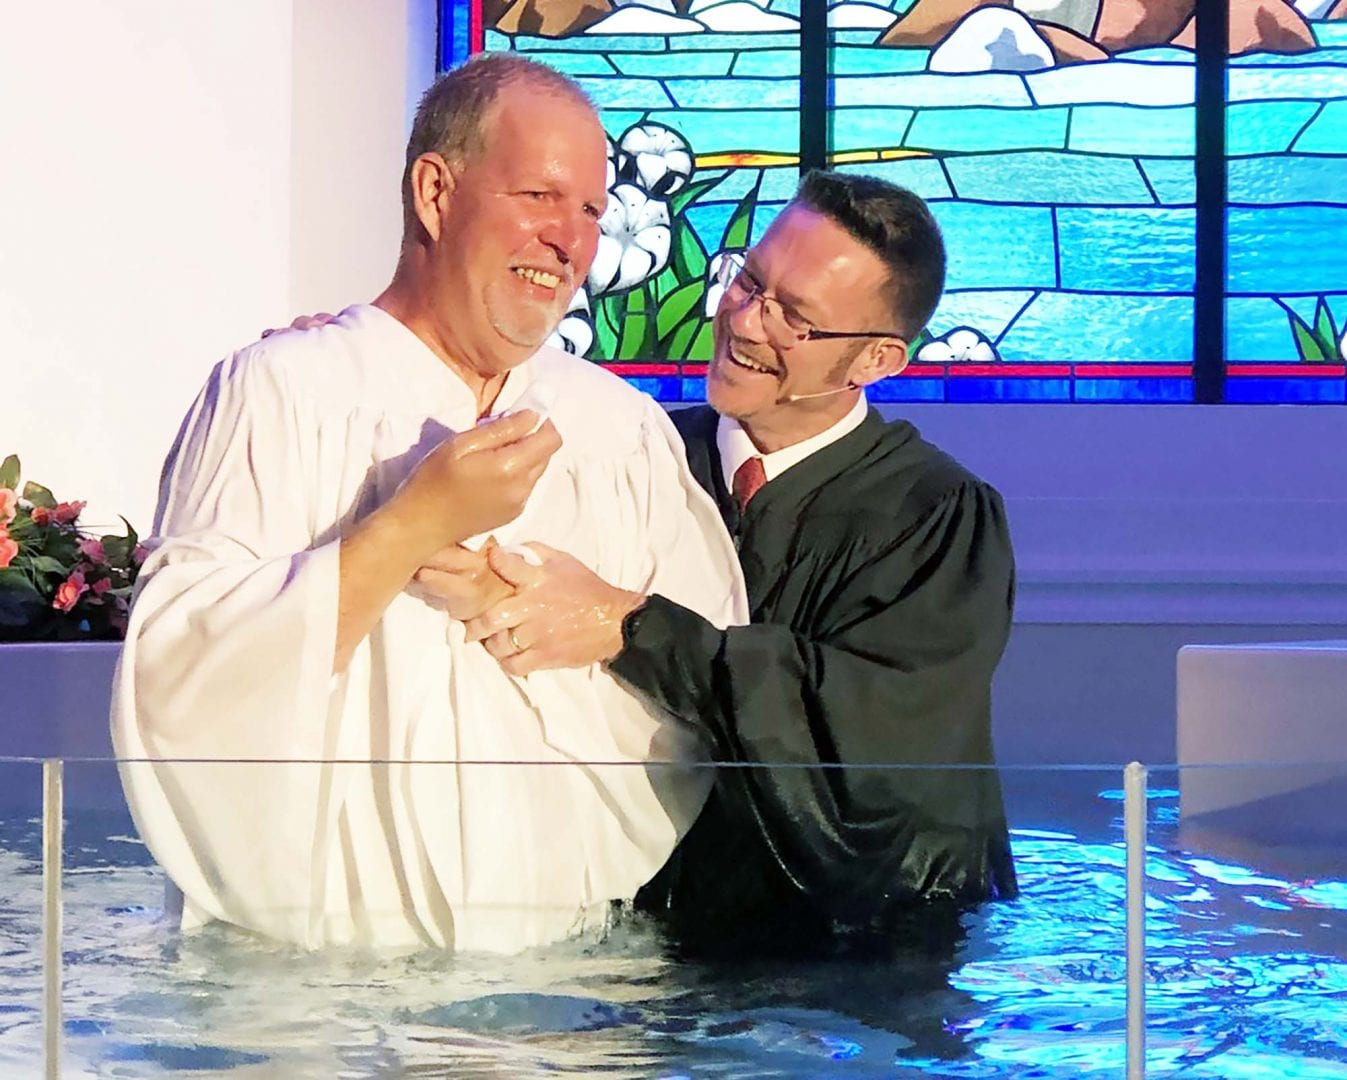 Jeff Reynolds baptizes a new believer